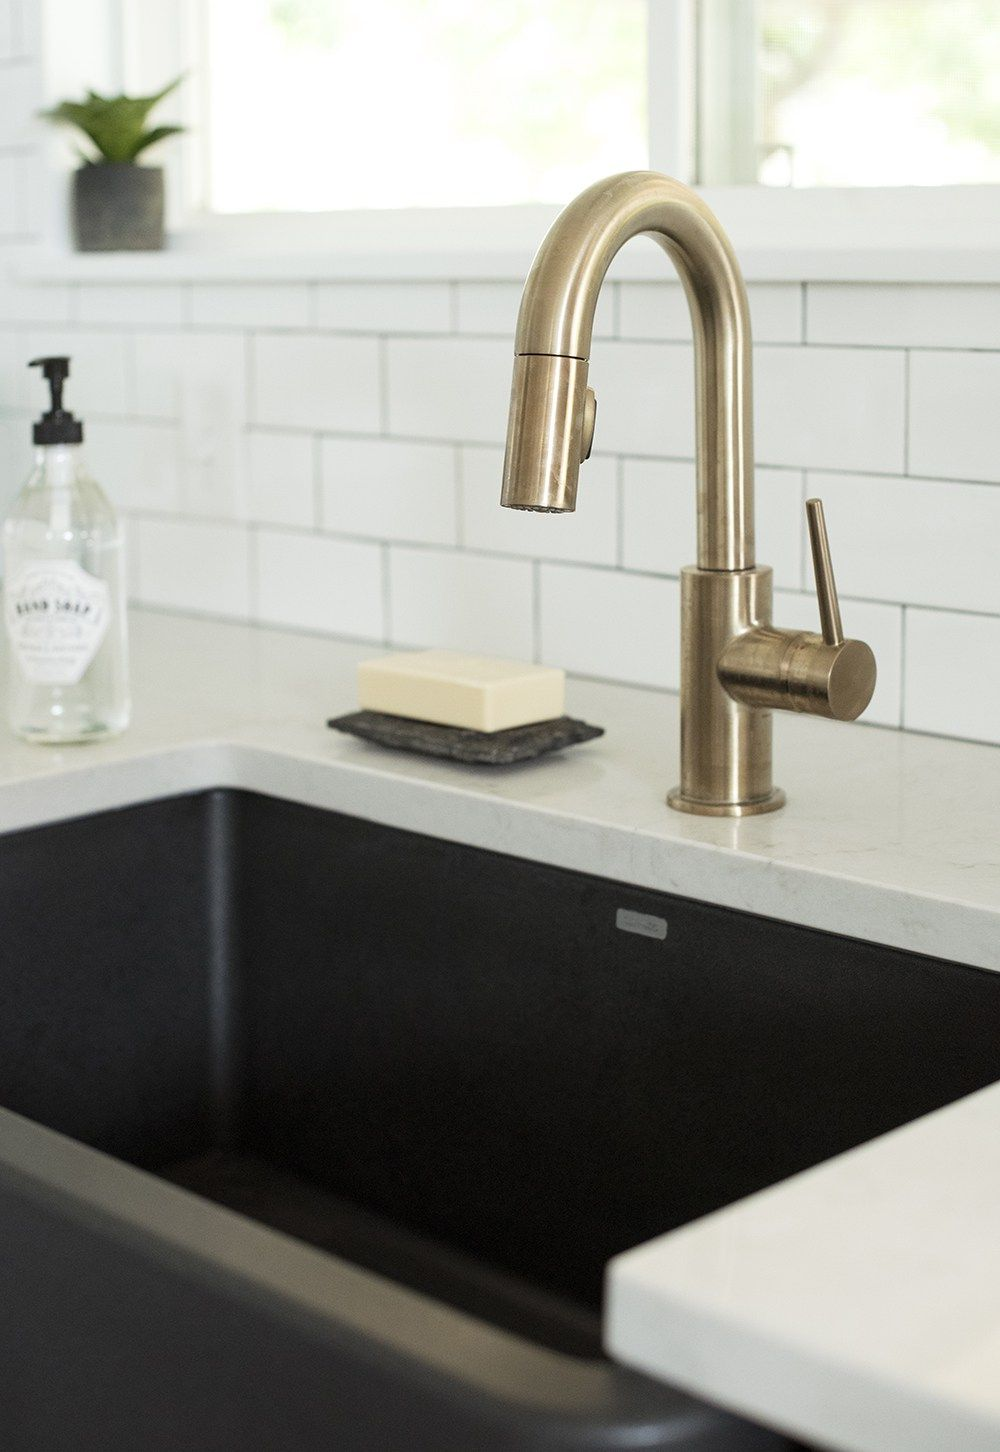 Tuxedo Kitchen Get The Look Room For Tuesday Blog With Images